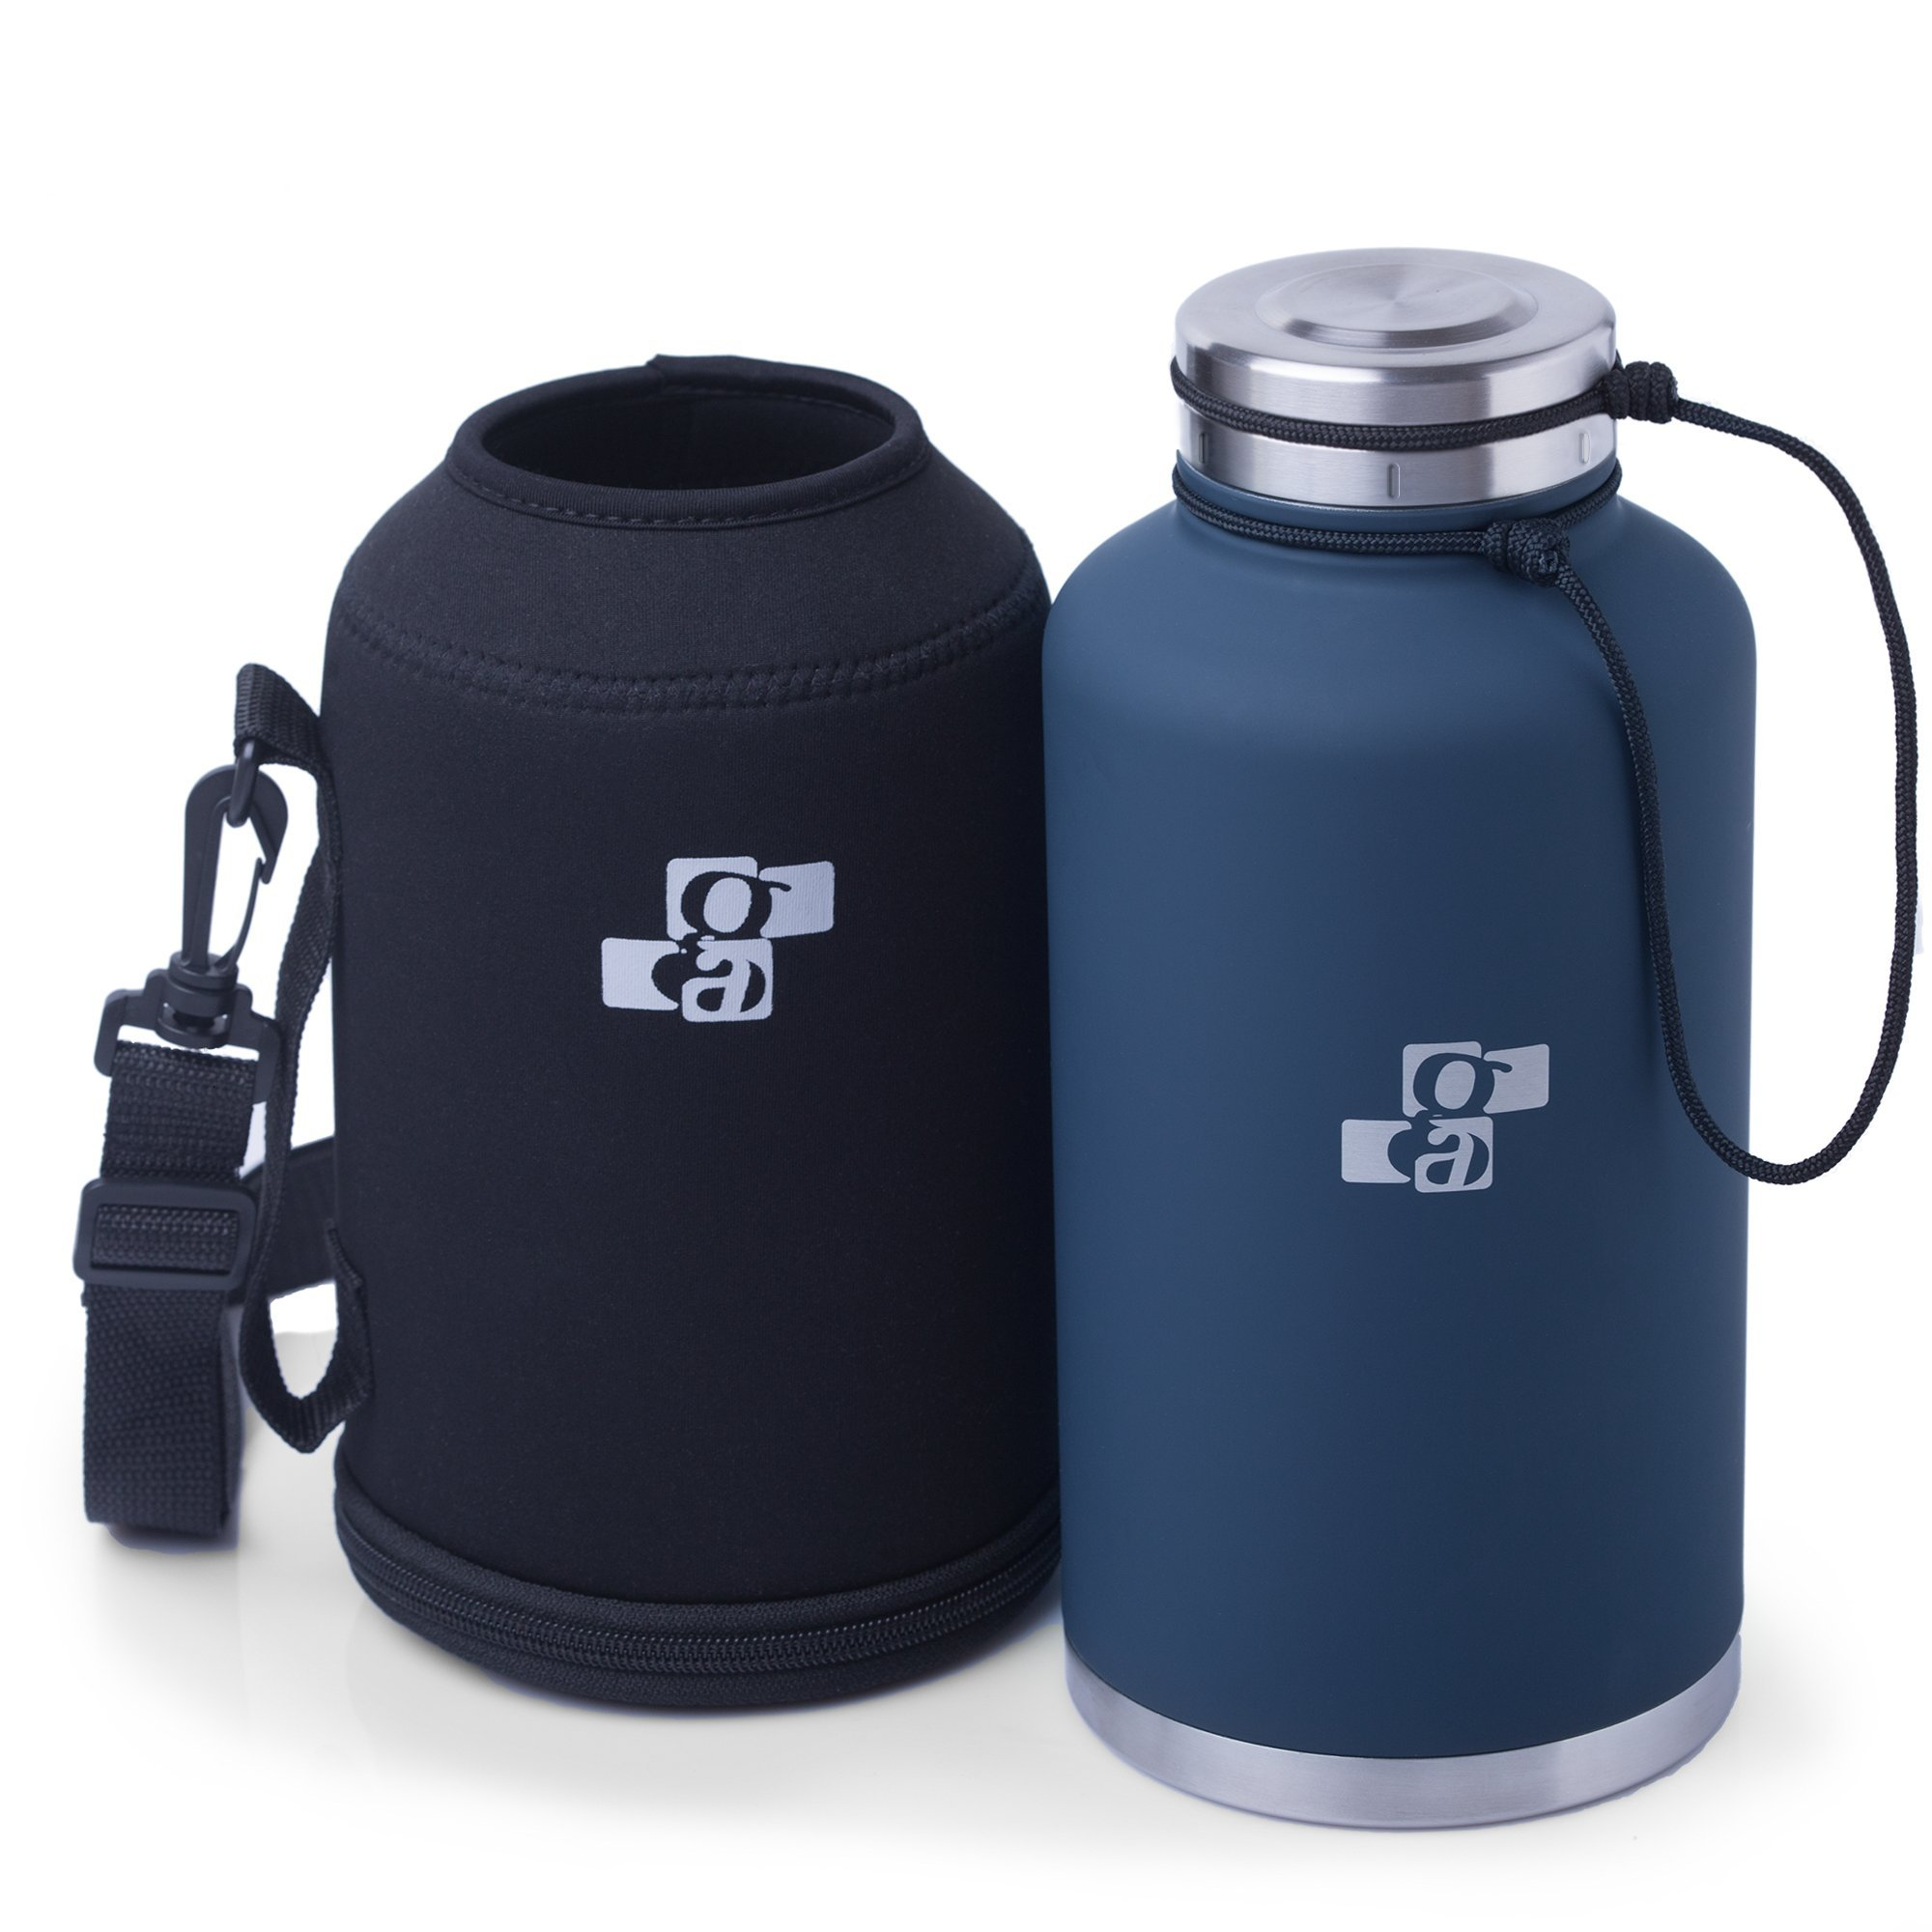 [Upgraded] Beer Growler and Water Bottle 64 oz | Insulated Stainless Steel Vacuum Growler and Water Bottle Dark Blue for HOT and COLD Beverages | Black Neoprene Growler Carrier Included